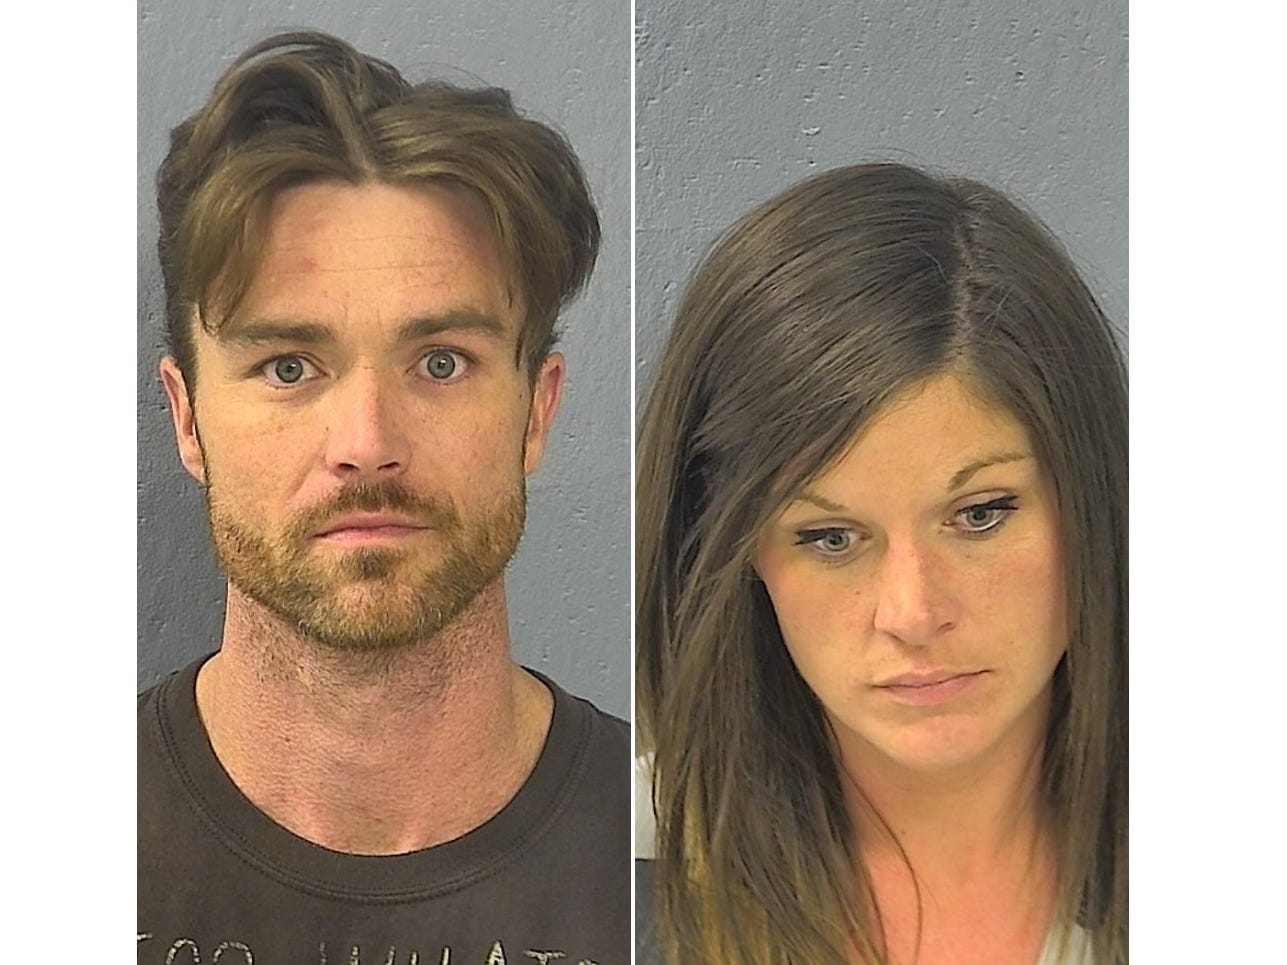 Couple took TVs, liquor from Springfield bar, then left their cell phones inside, docs say